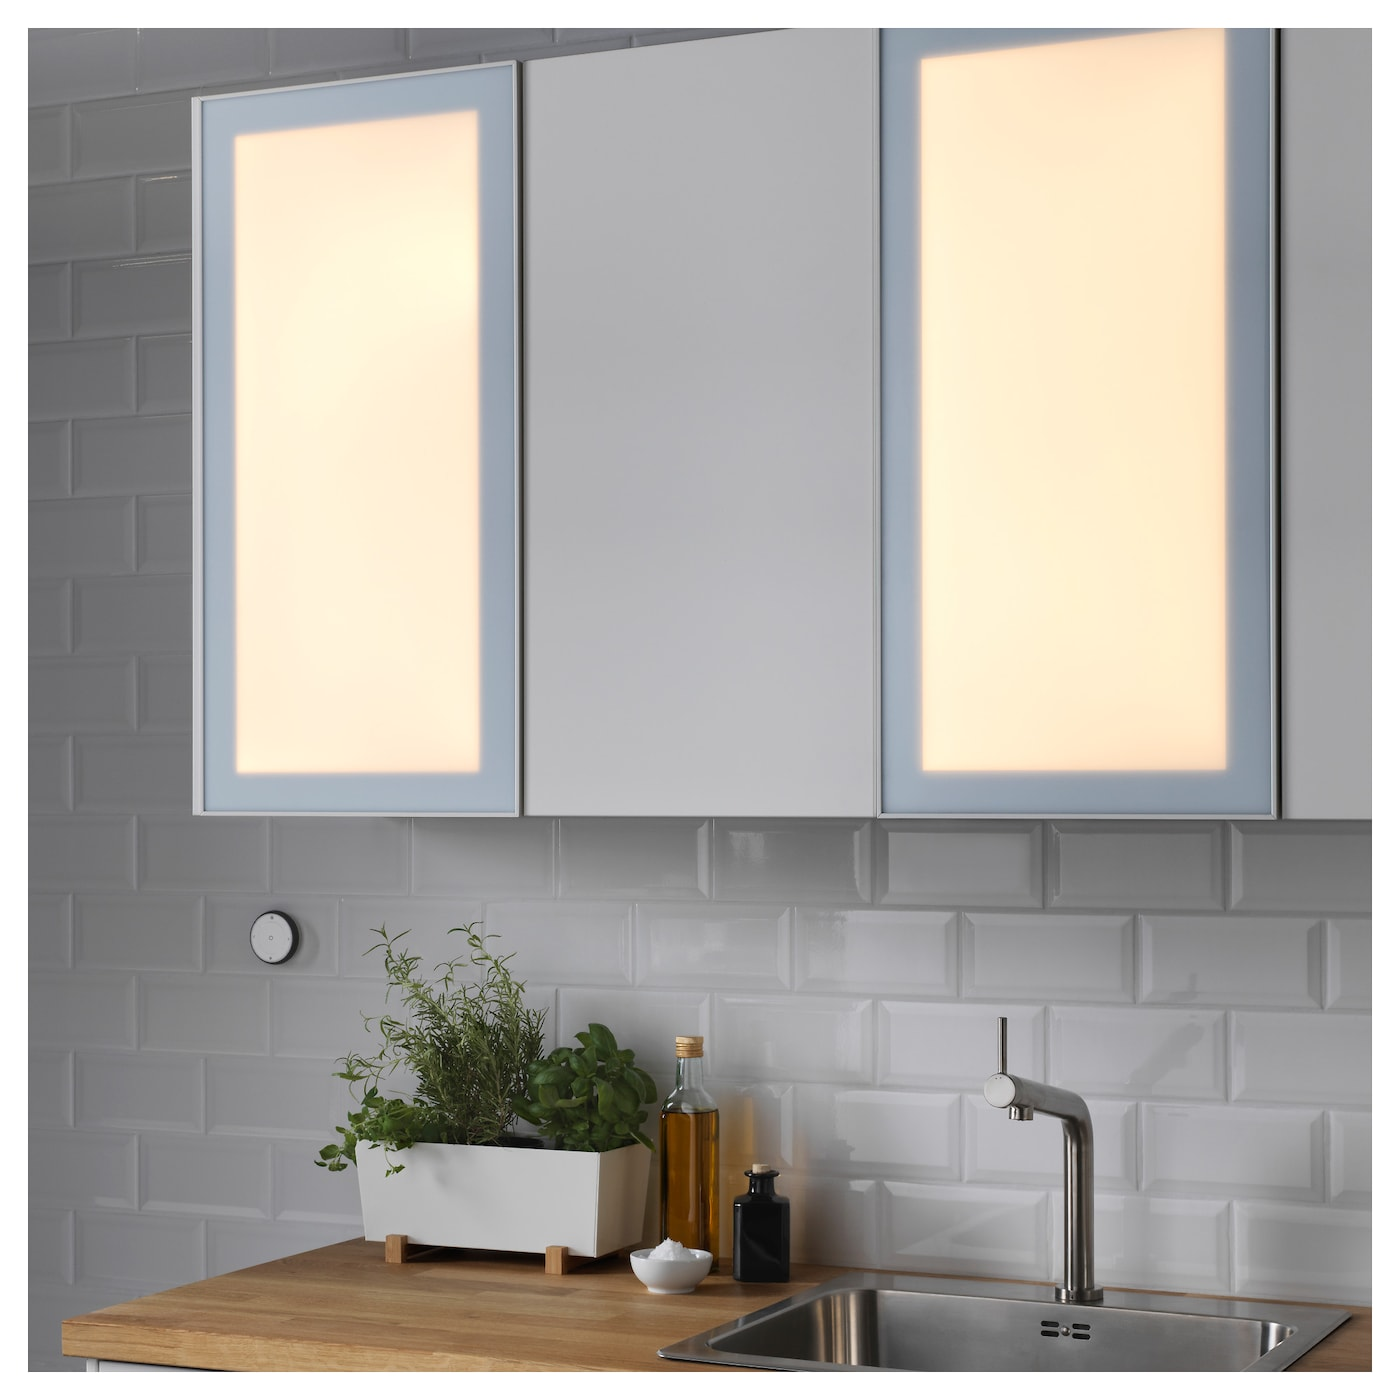 IKEA JORMLIEN LED light door w wireless control